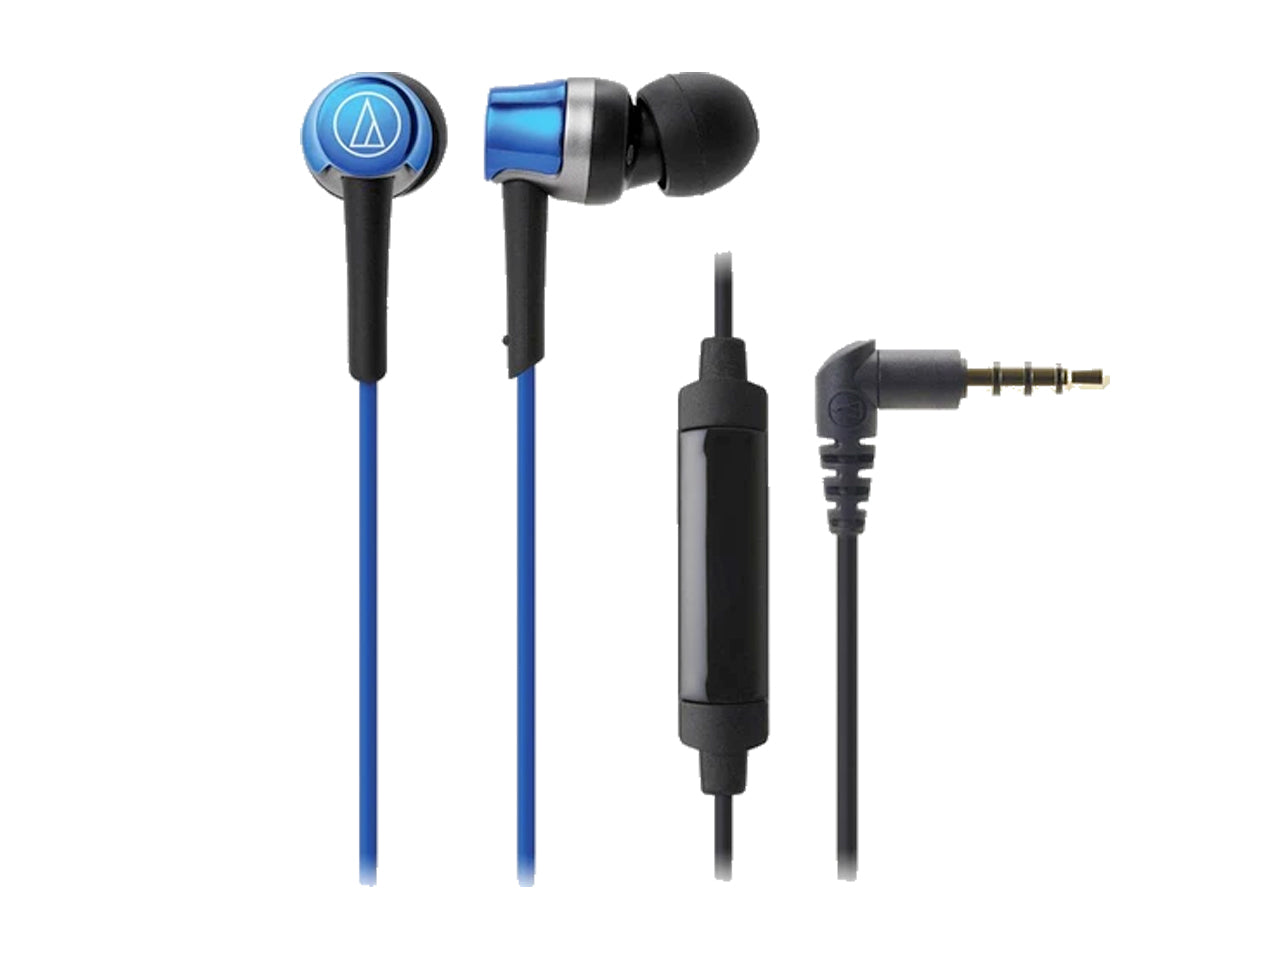 AUDIO TECHNICA SONIC FUEL IN EAR HEADPHONES WITH IN-LINE MIC and CONTROL (Blue)-computerspace